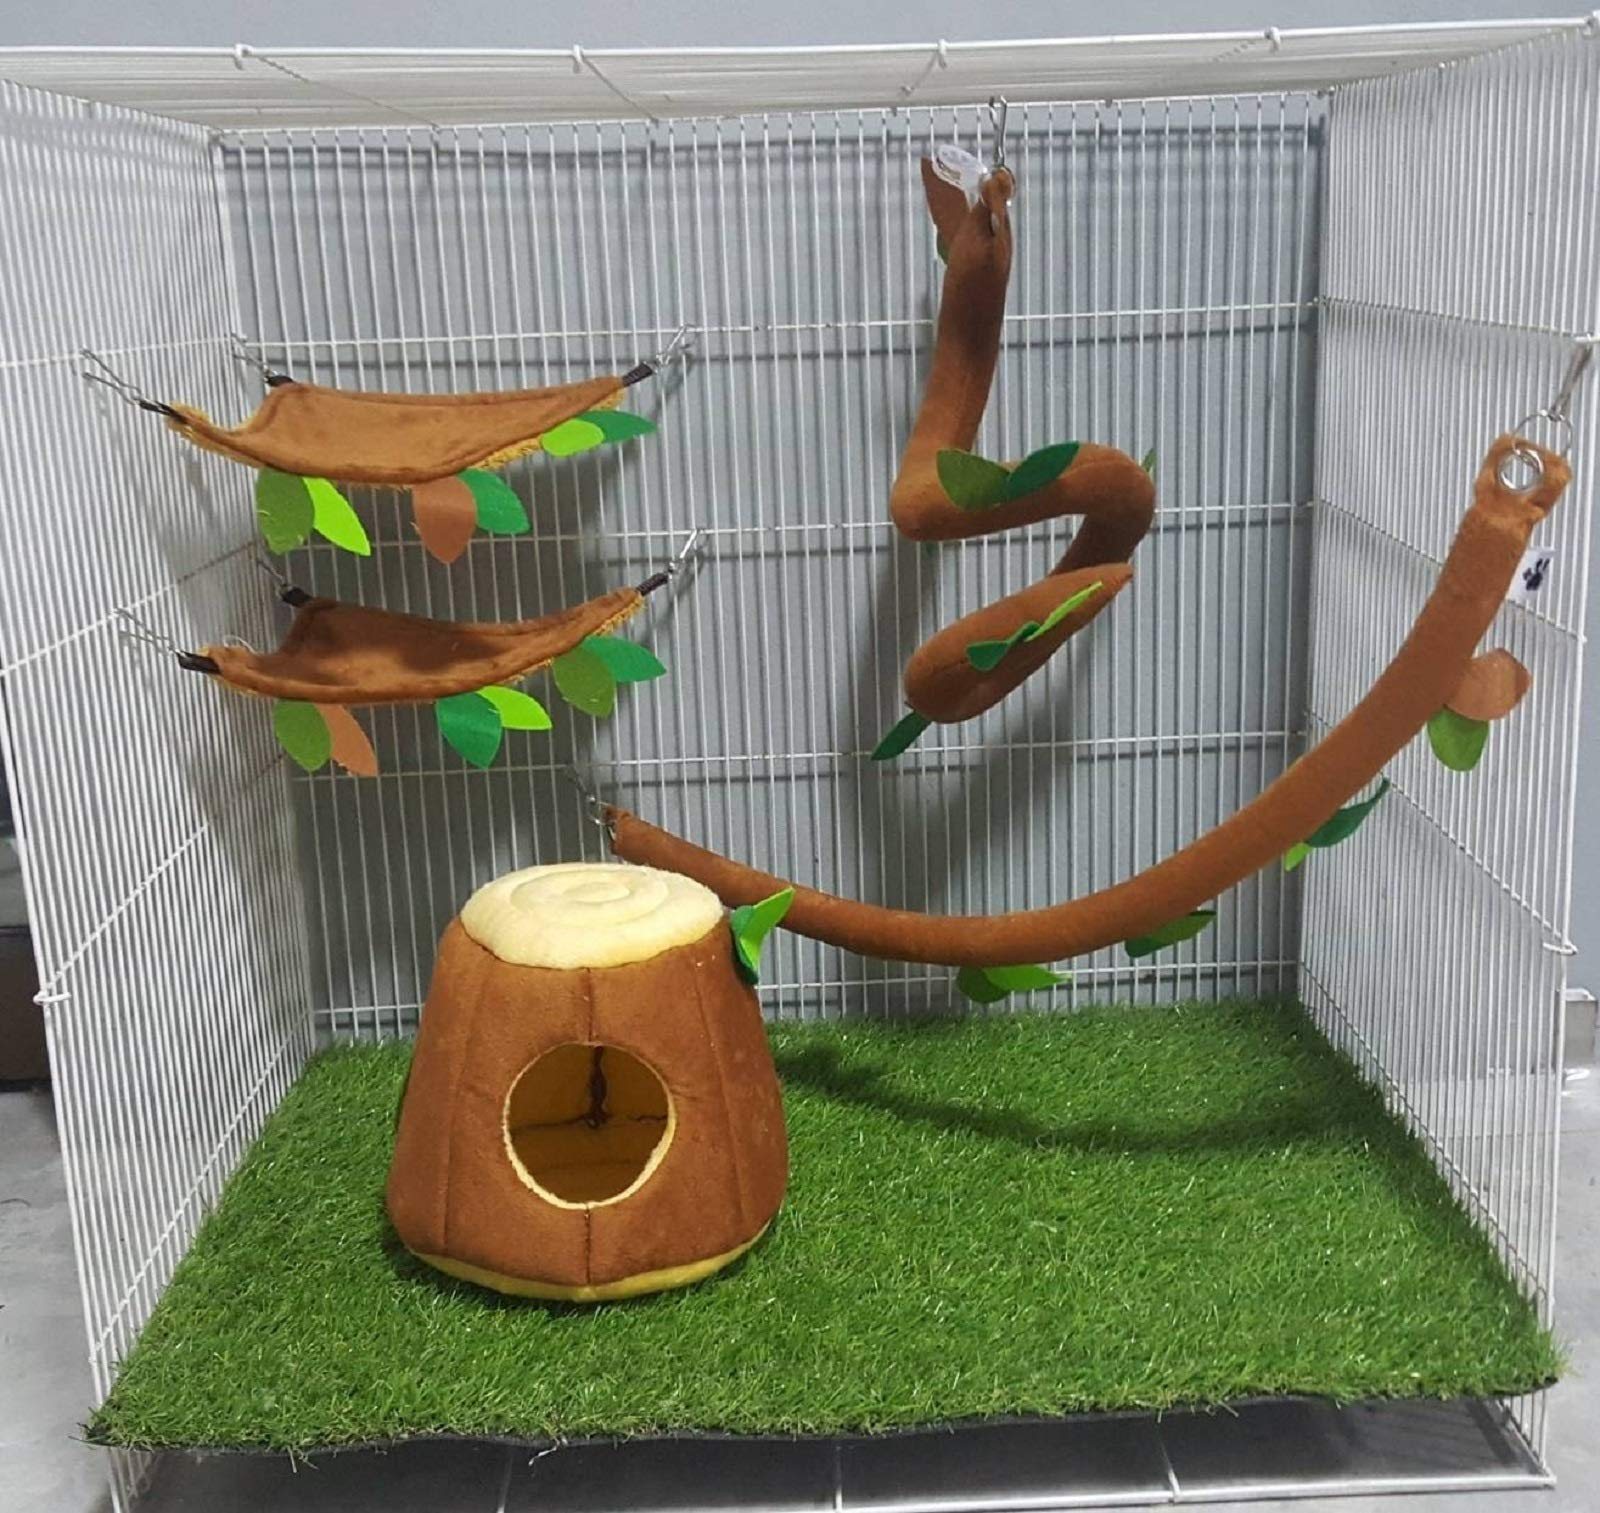 5 Pcs Sugar Glider Hamster Squirrel Chinchillas Small Pet Cage Set Vertical Log Forest Pattern Get Free 1 Small Pet Treats, Polar Bear's Republic (Light Brown Set) by Polar Bear's Pet Shop